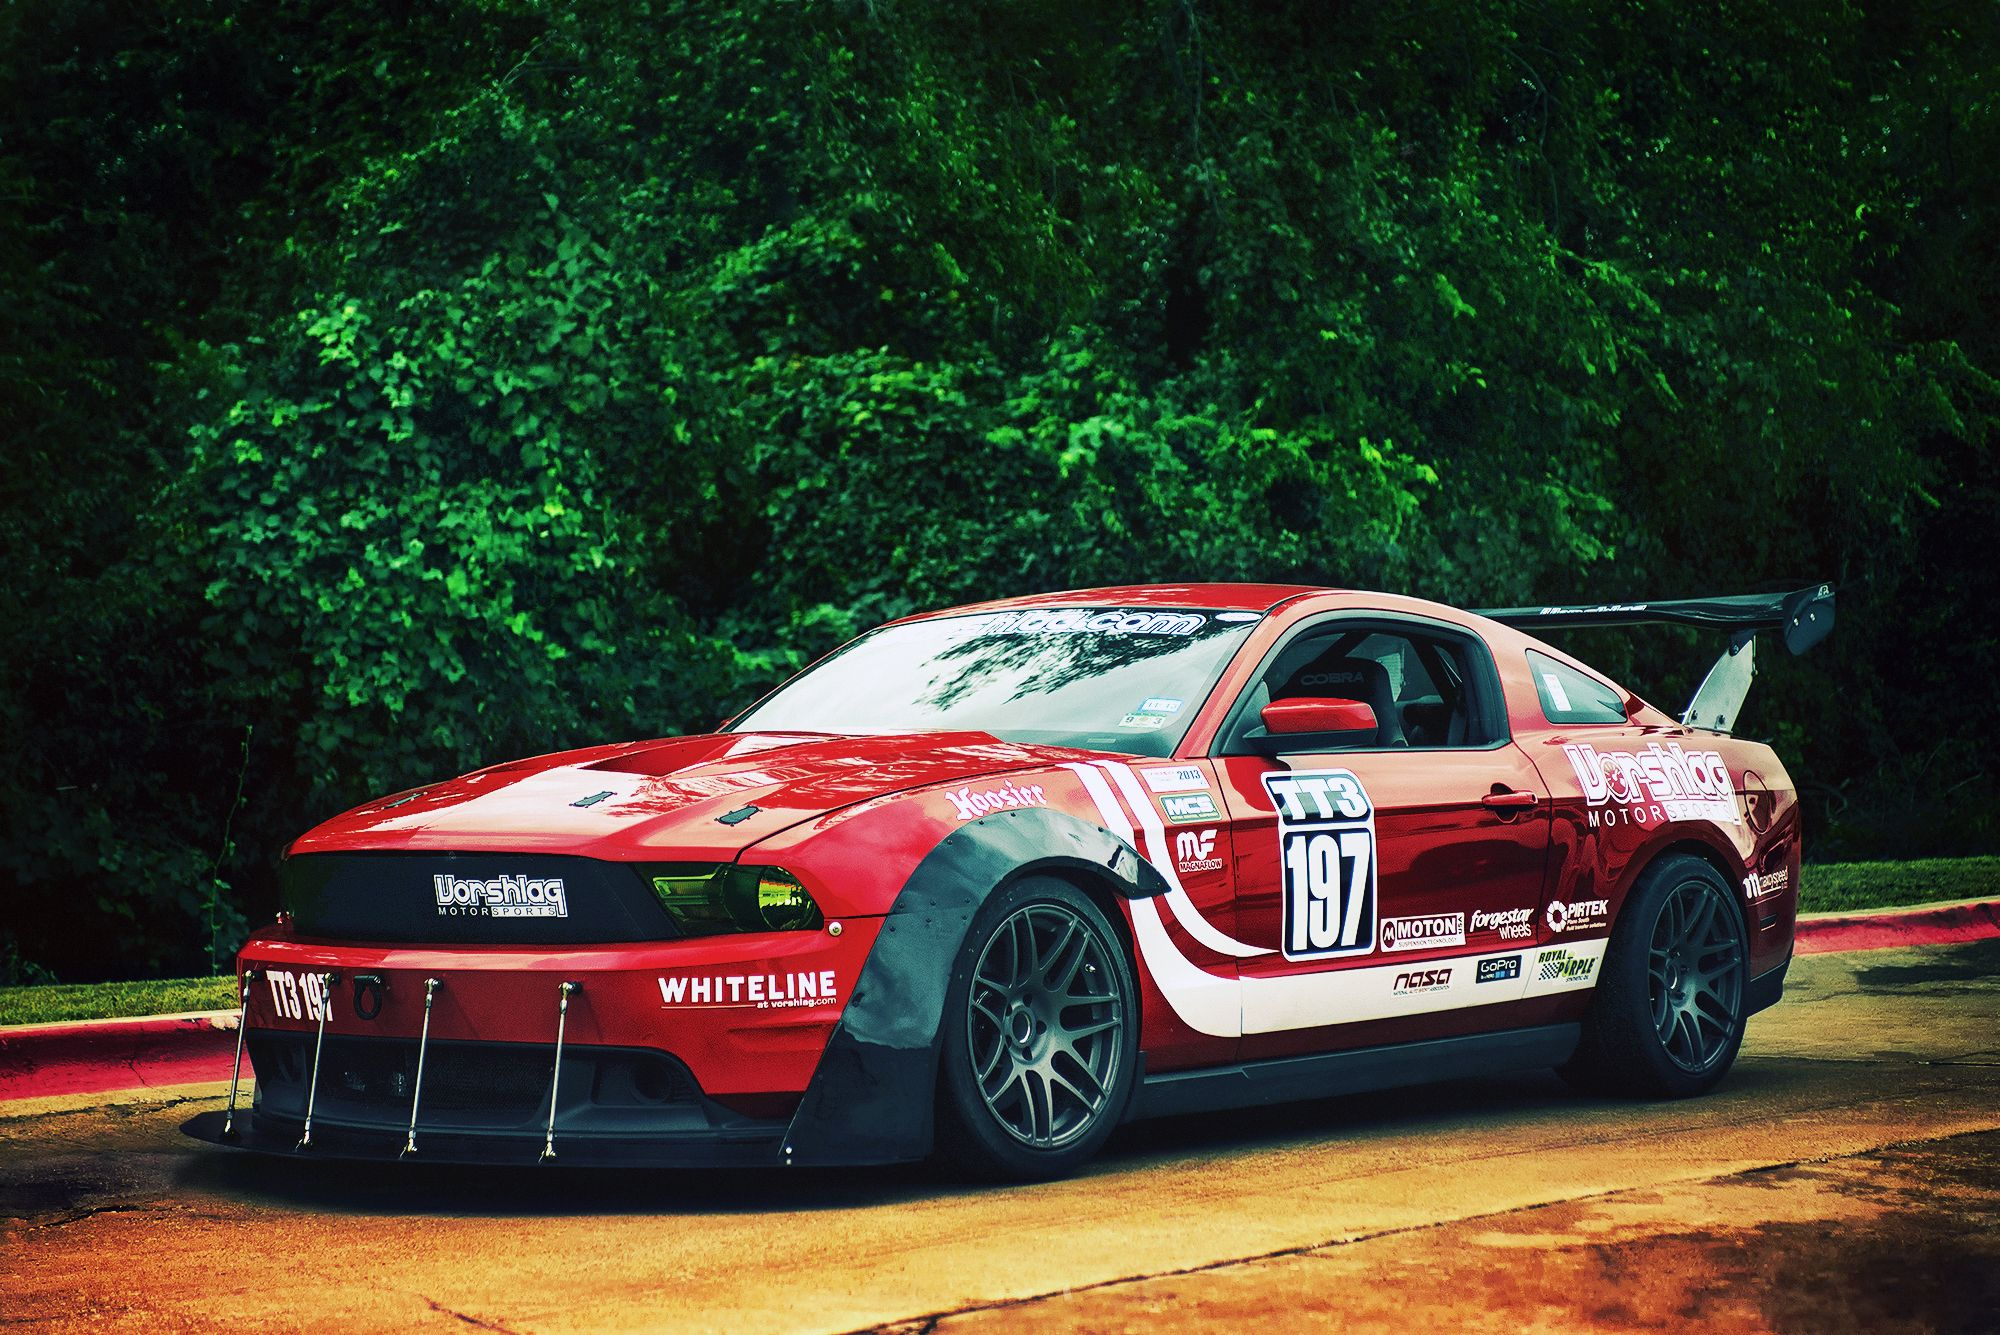 Wallpaper Ford Mustang Gt Red Race Car Desktop Picture Hd Photo